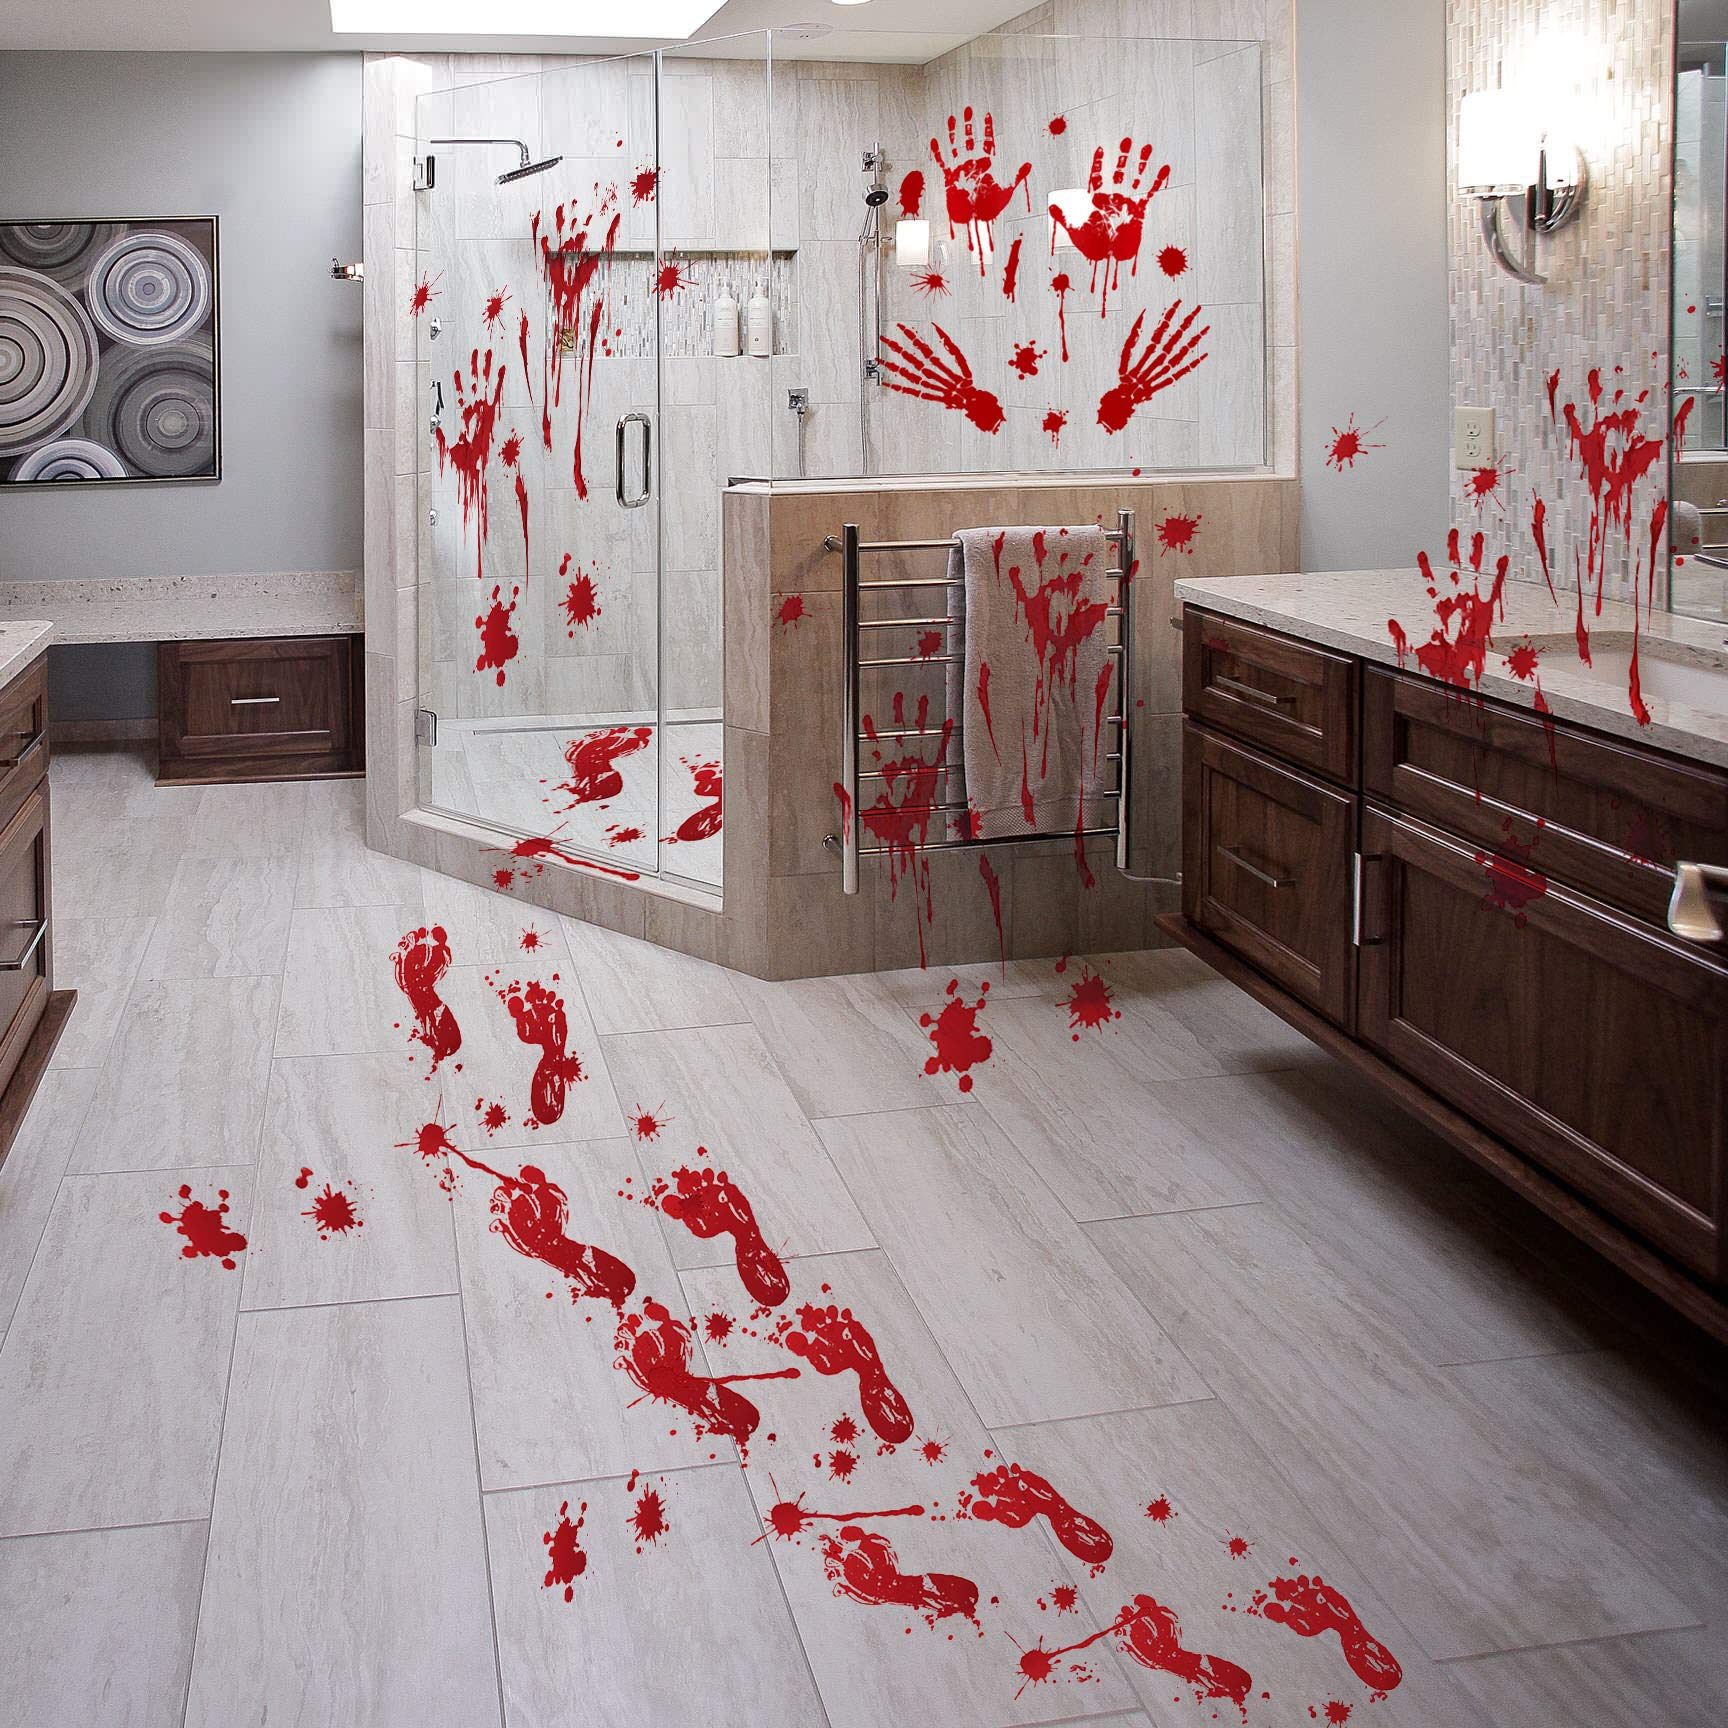 8 Sheets About 60 PC Halloween Party Decor Bloody Footprint Handprint Clings, Unique Halloween Decorations, Horror Bloody Window Floor Sticker Decal Set Style-B